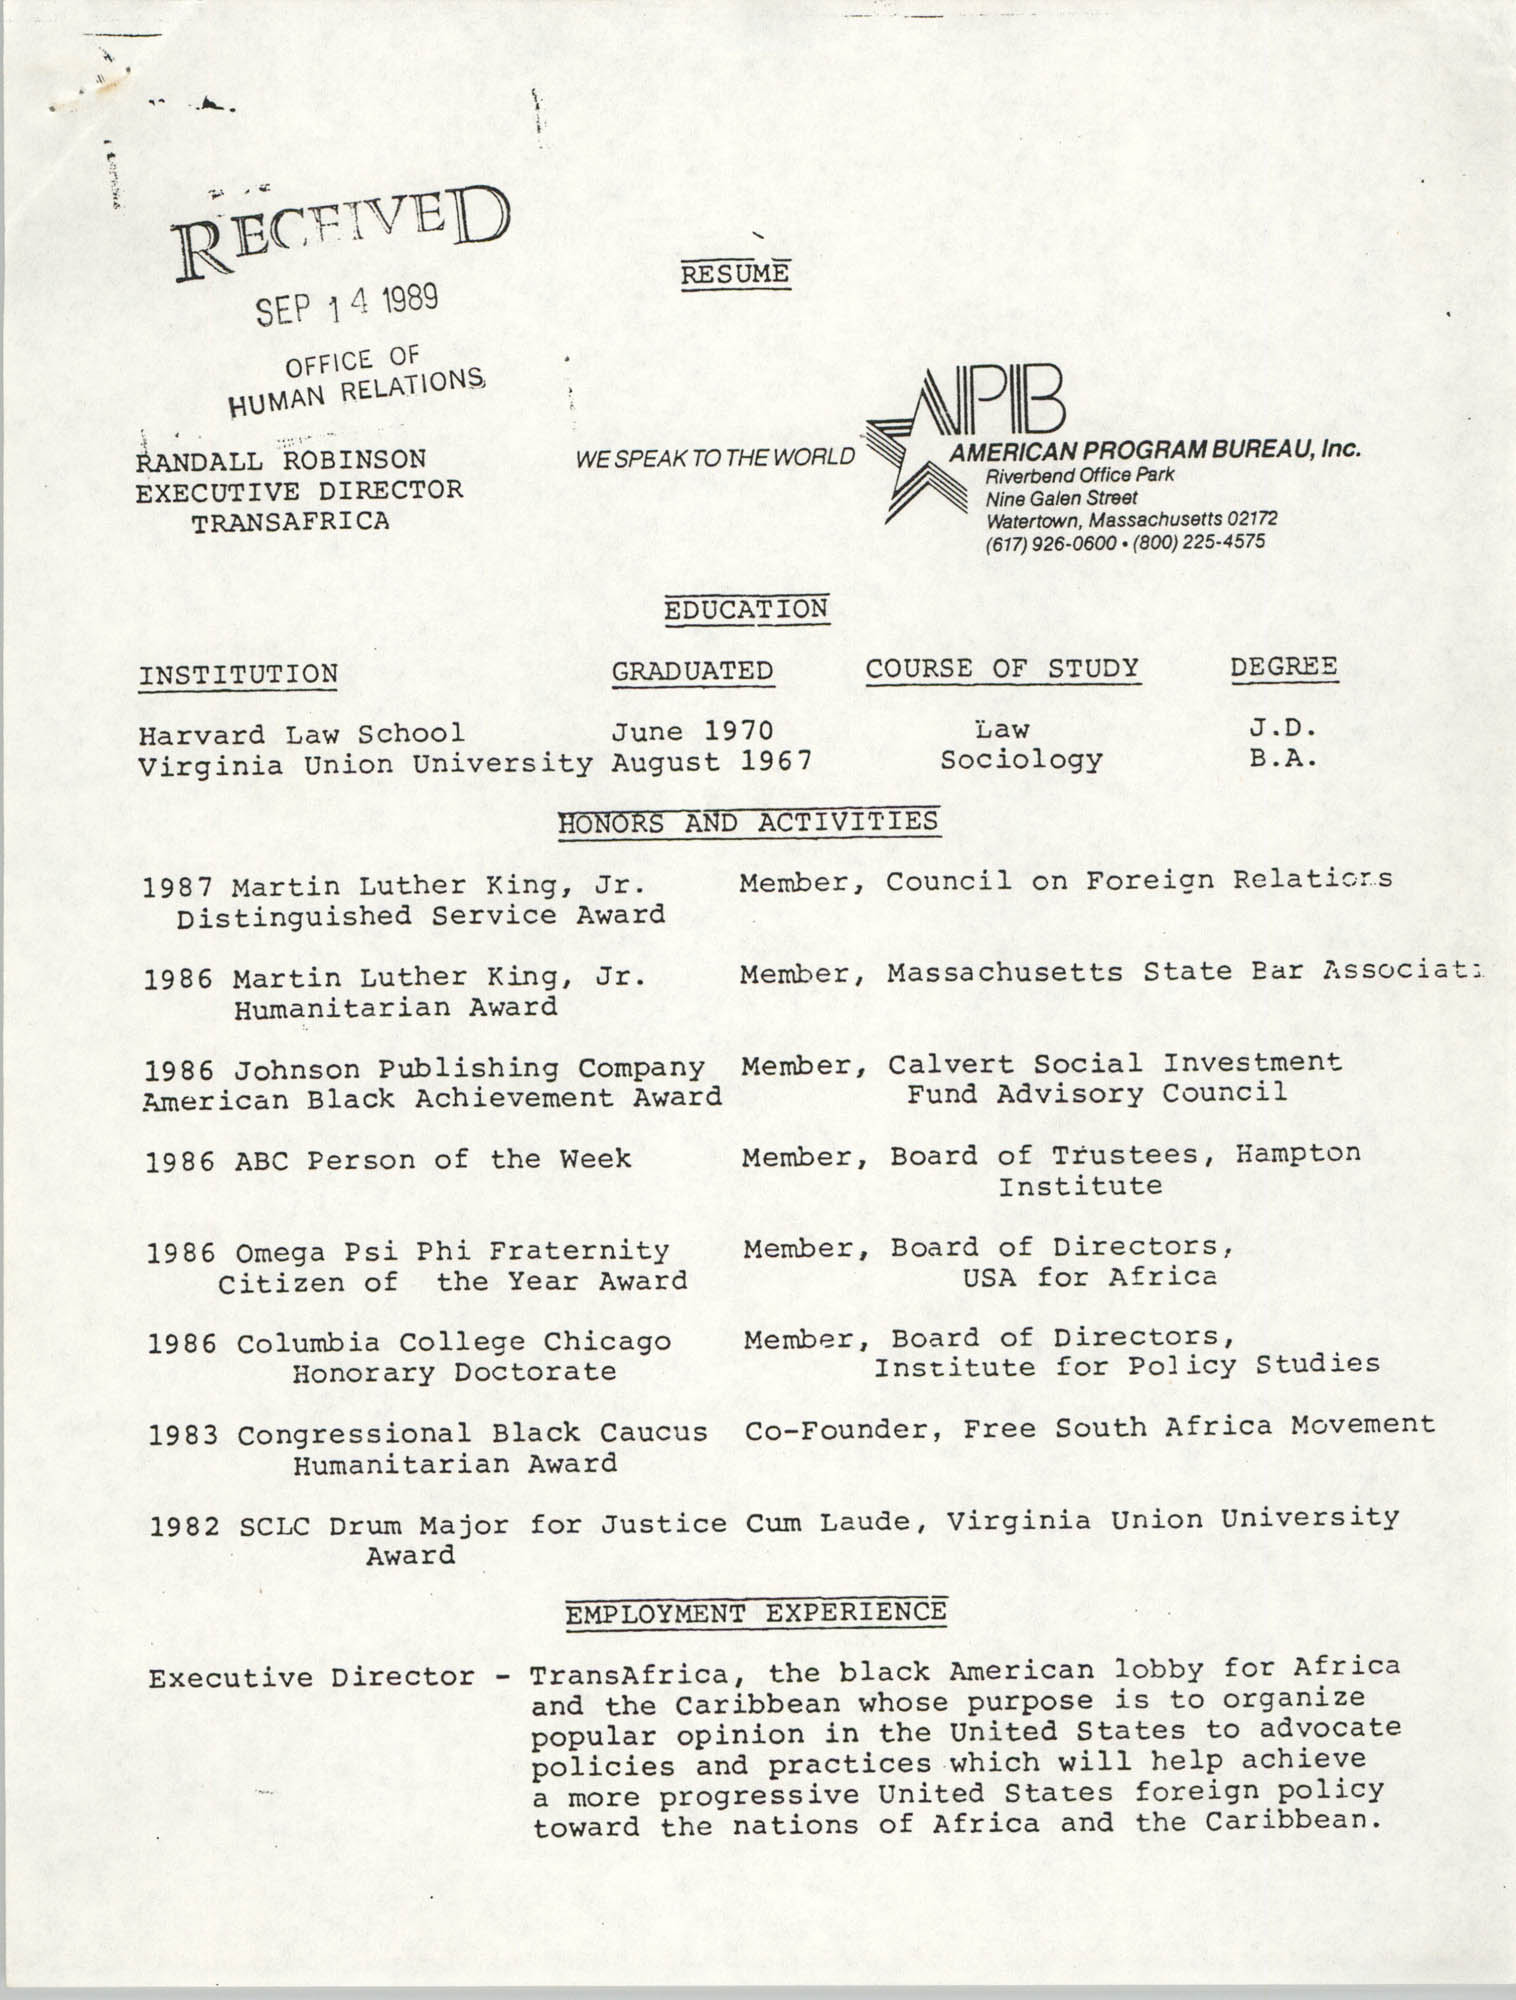 Resume, Randall Robinson, September 14, 1989